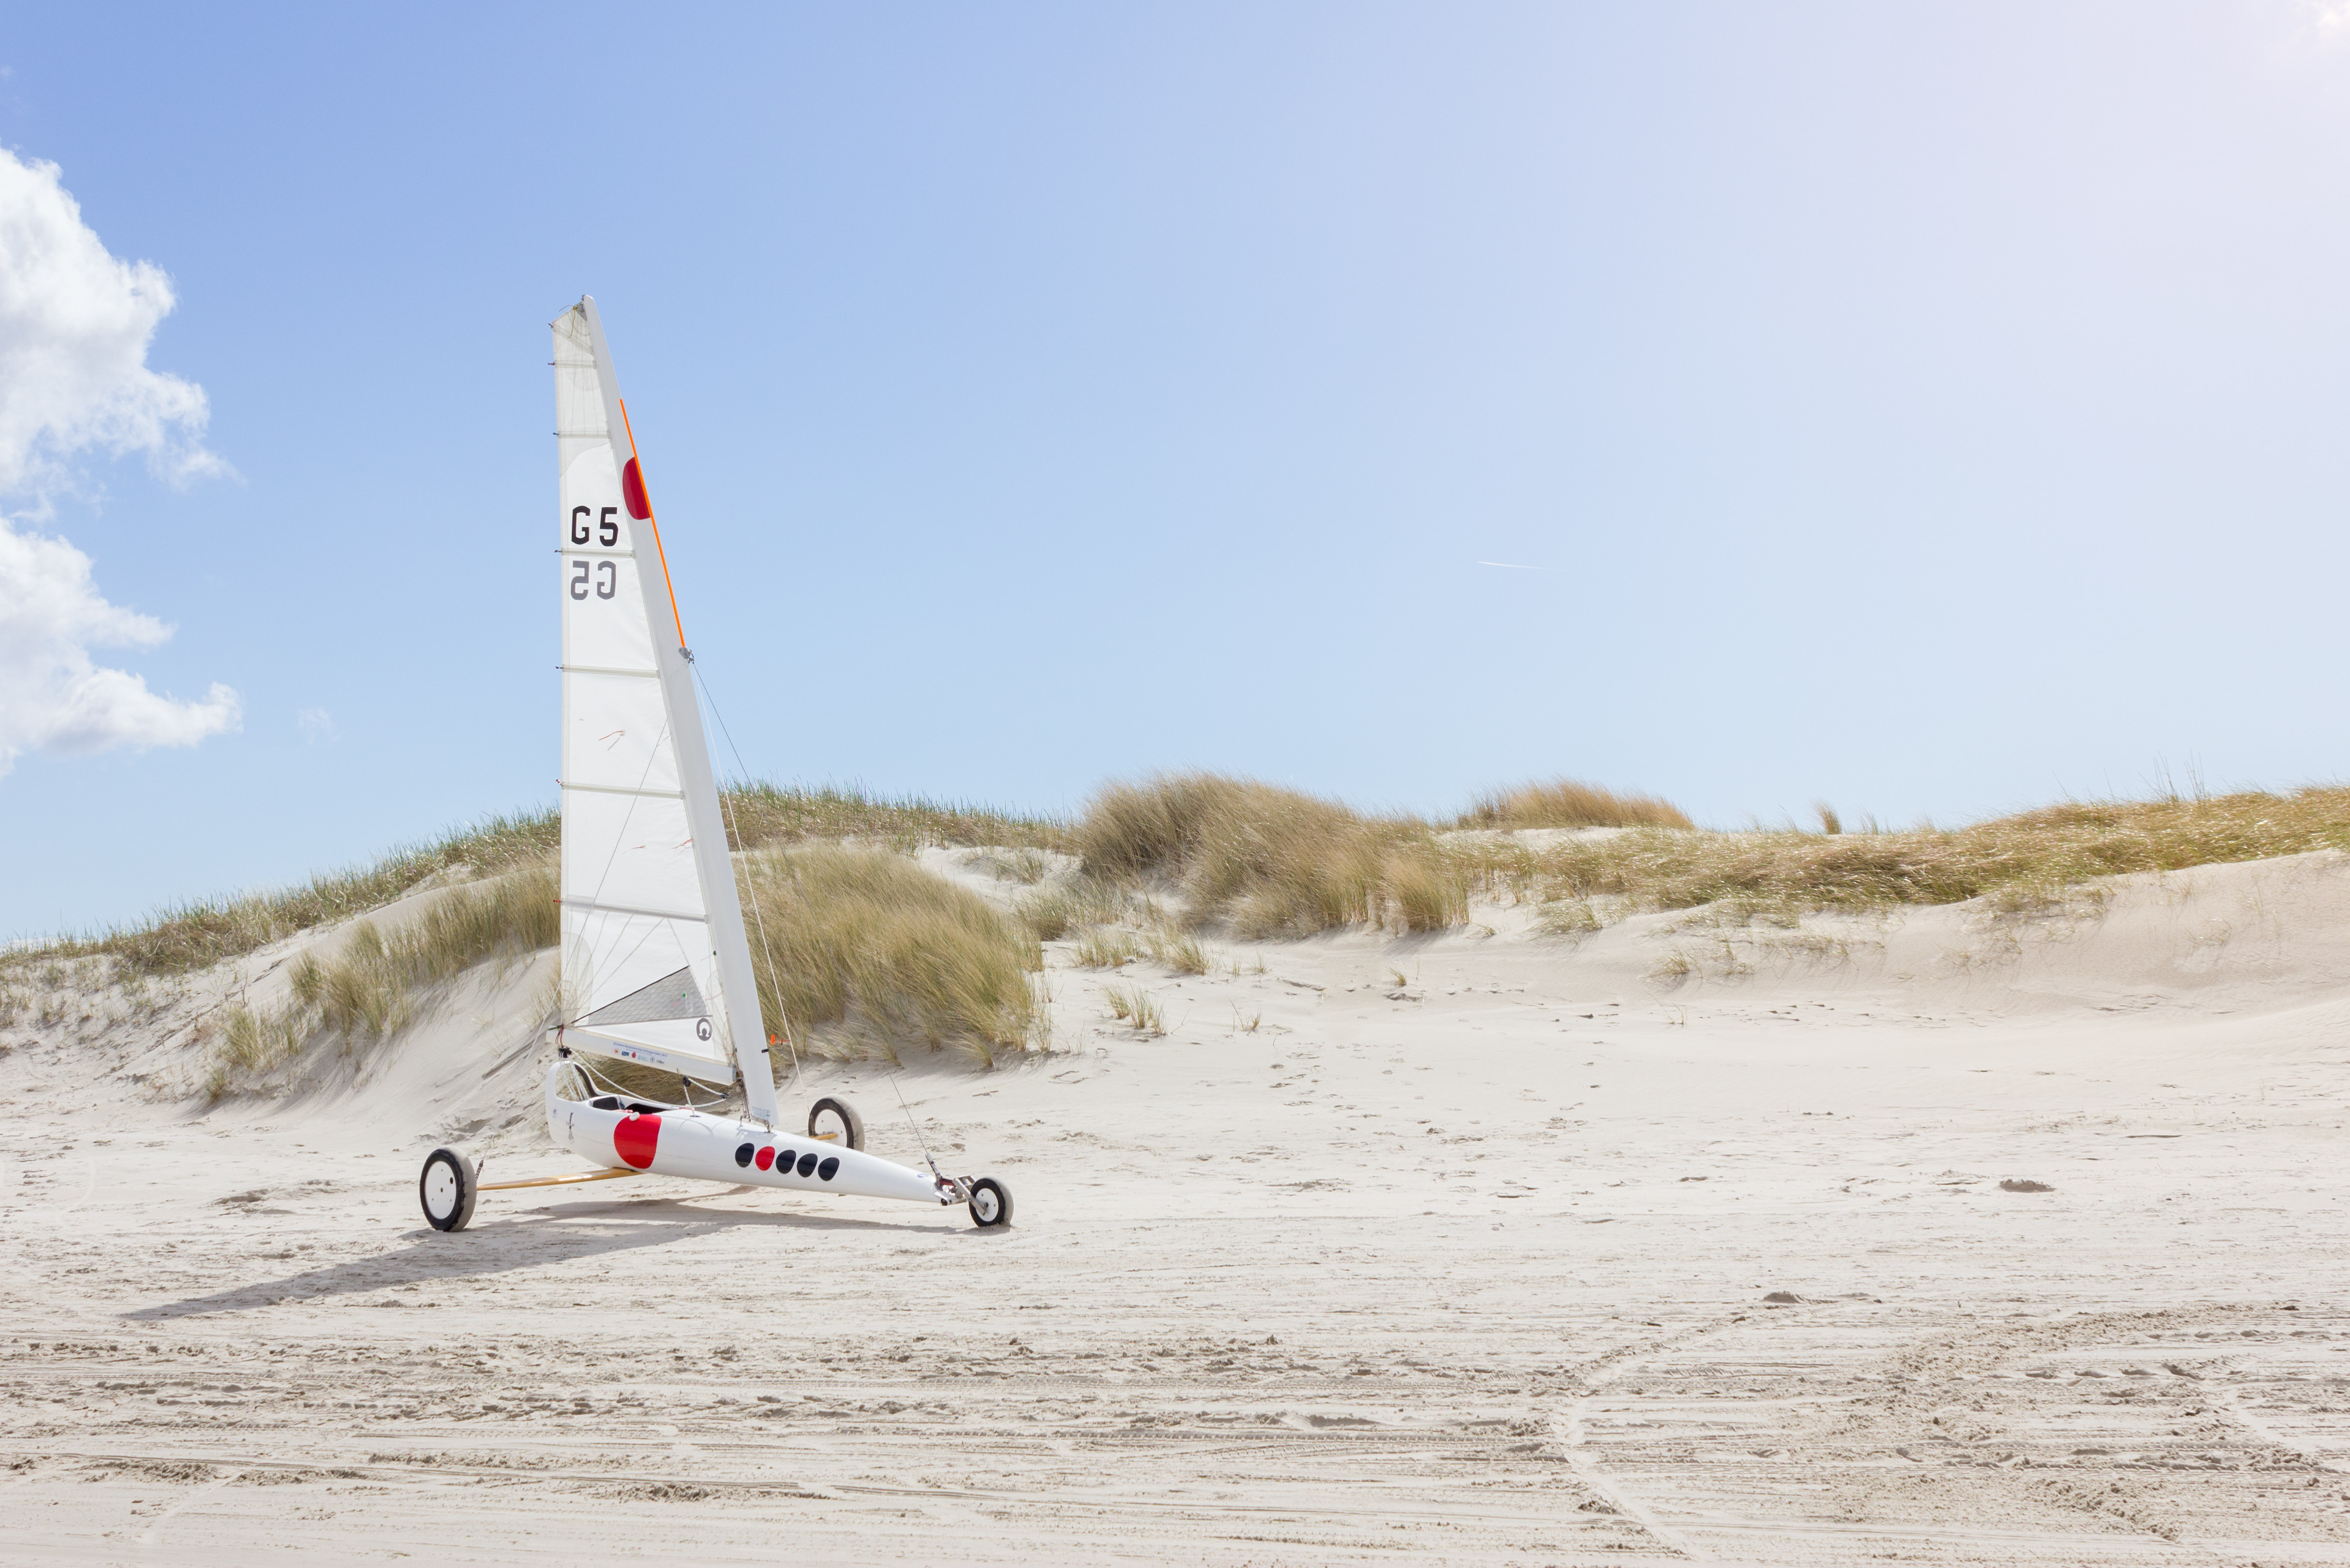 landscape photo of white sailboat with wheels on sand